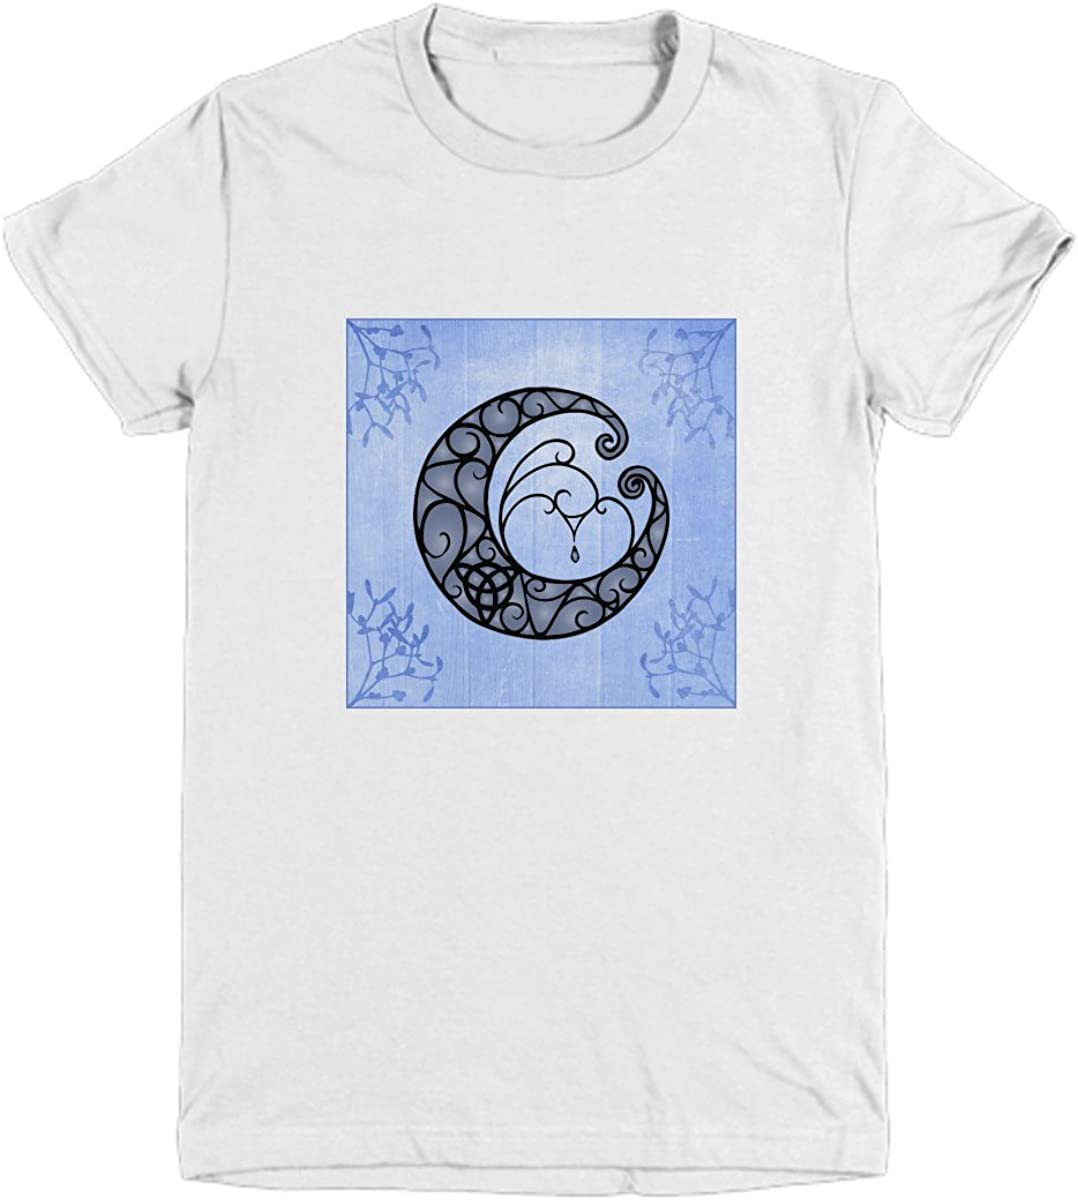 Youth Tee with Crescent Moon and Low price Backdr Trinity on Knot Year-end gift Flowered